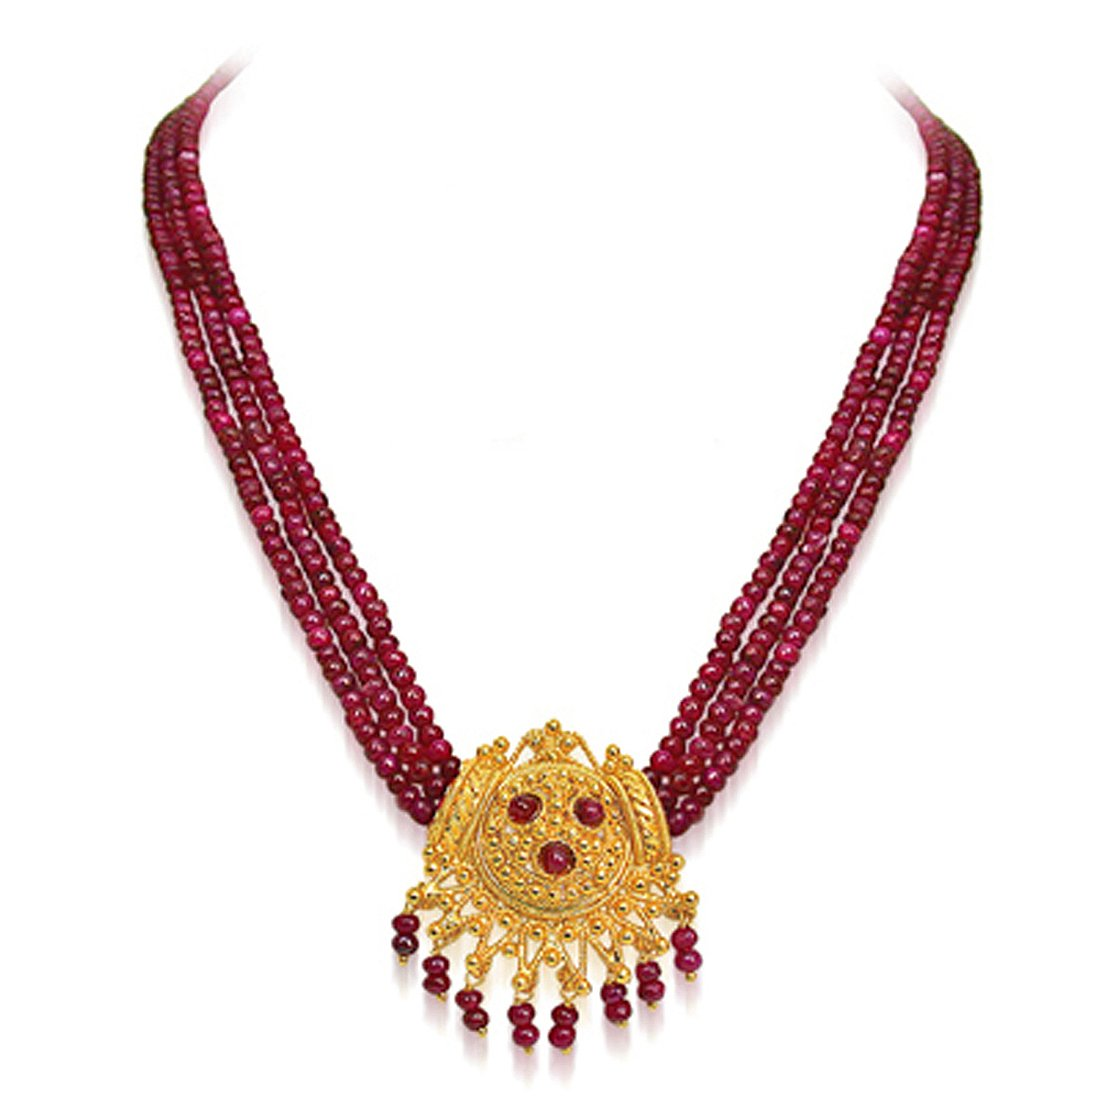 Buy SURATDIAMOND 3 Line Real Ruby Beads and Gold Plated Pendant Necklace  and Earring Set for Women (SP398) at Amazon.in